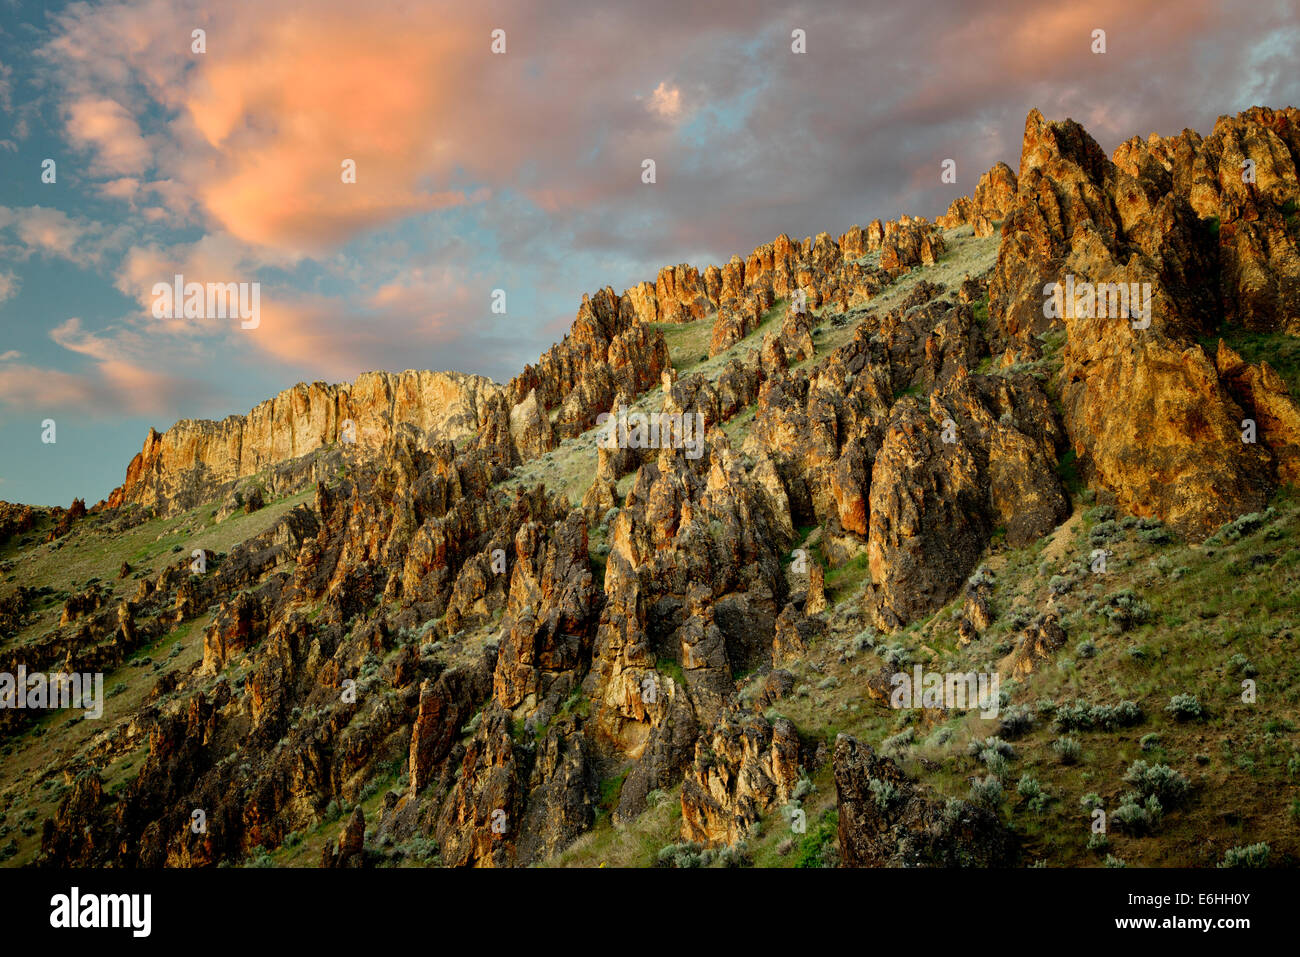 Rock formations and clouds in Leslie Gultch. Malhuer County, Oregon - Stock Image